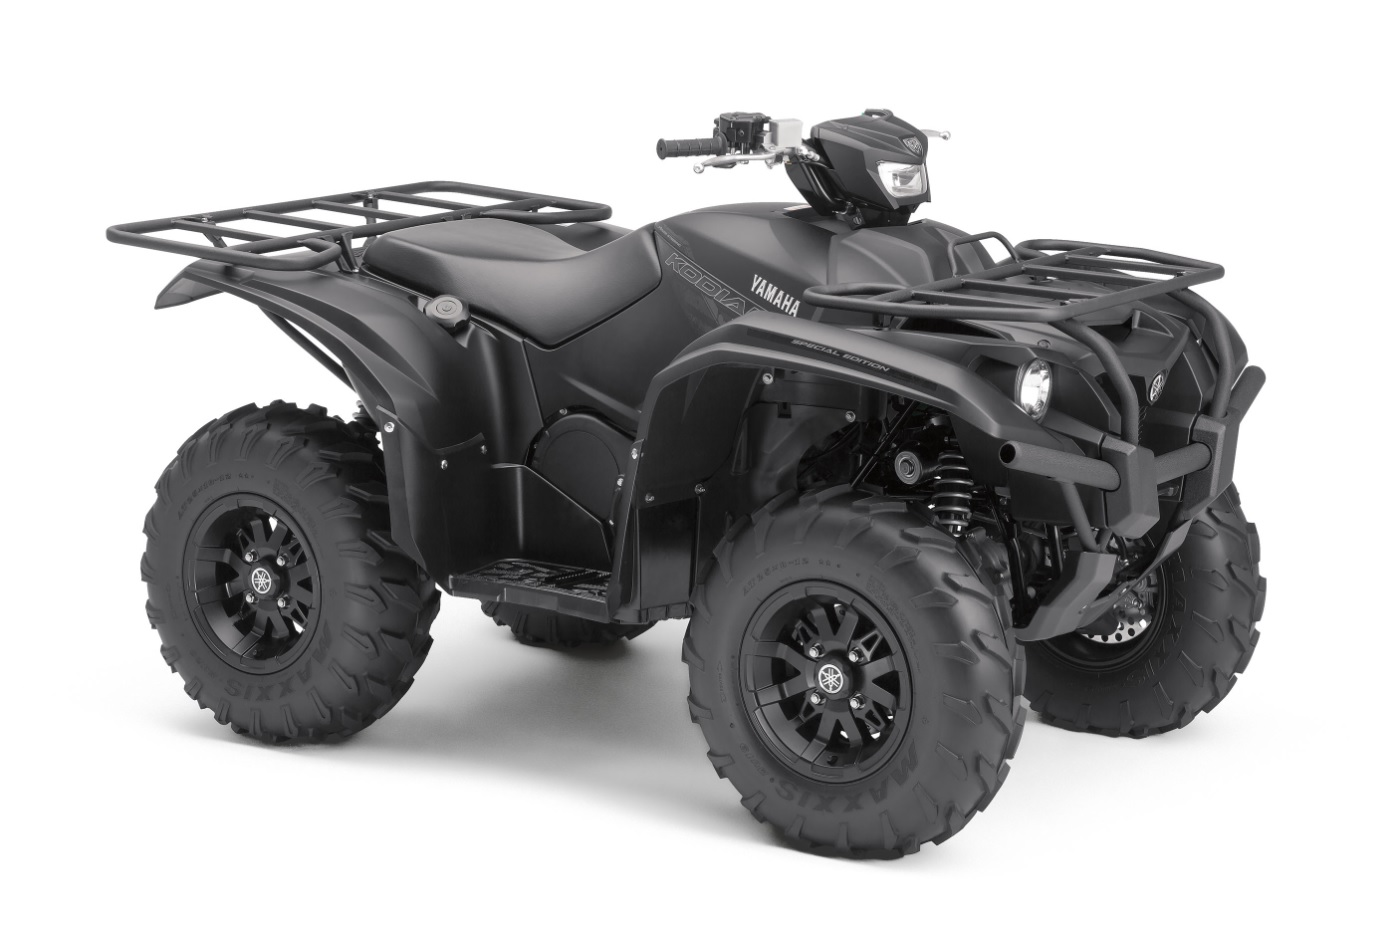 2017 yamaha yxz1000r arriving at dealers new kodiak 700 for 2017 yamaha grizzly review